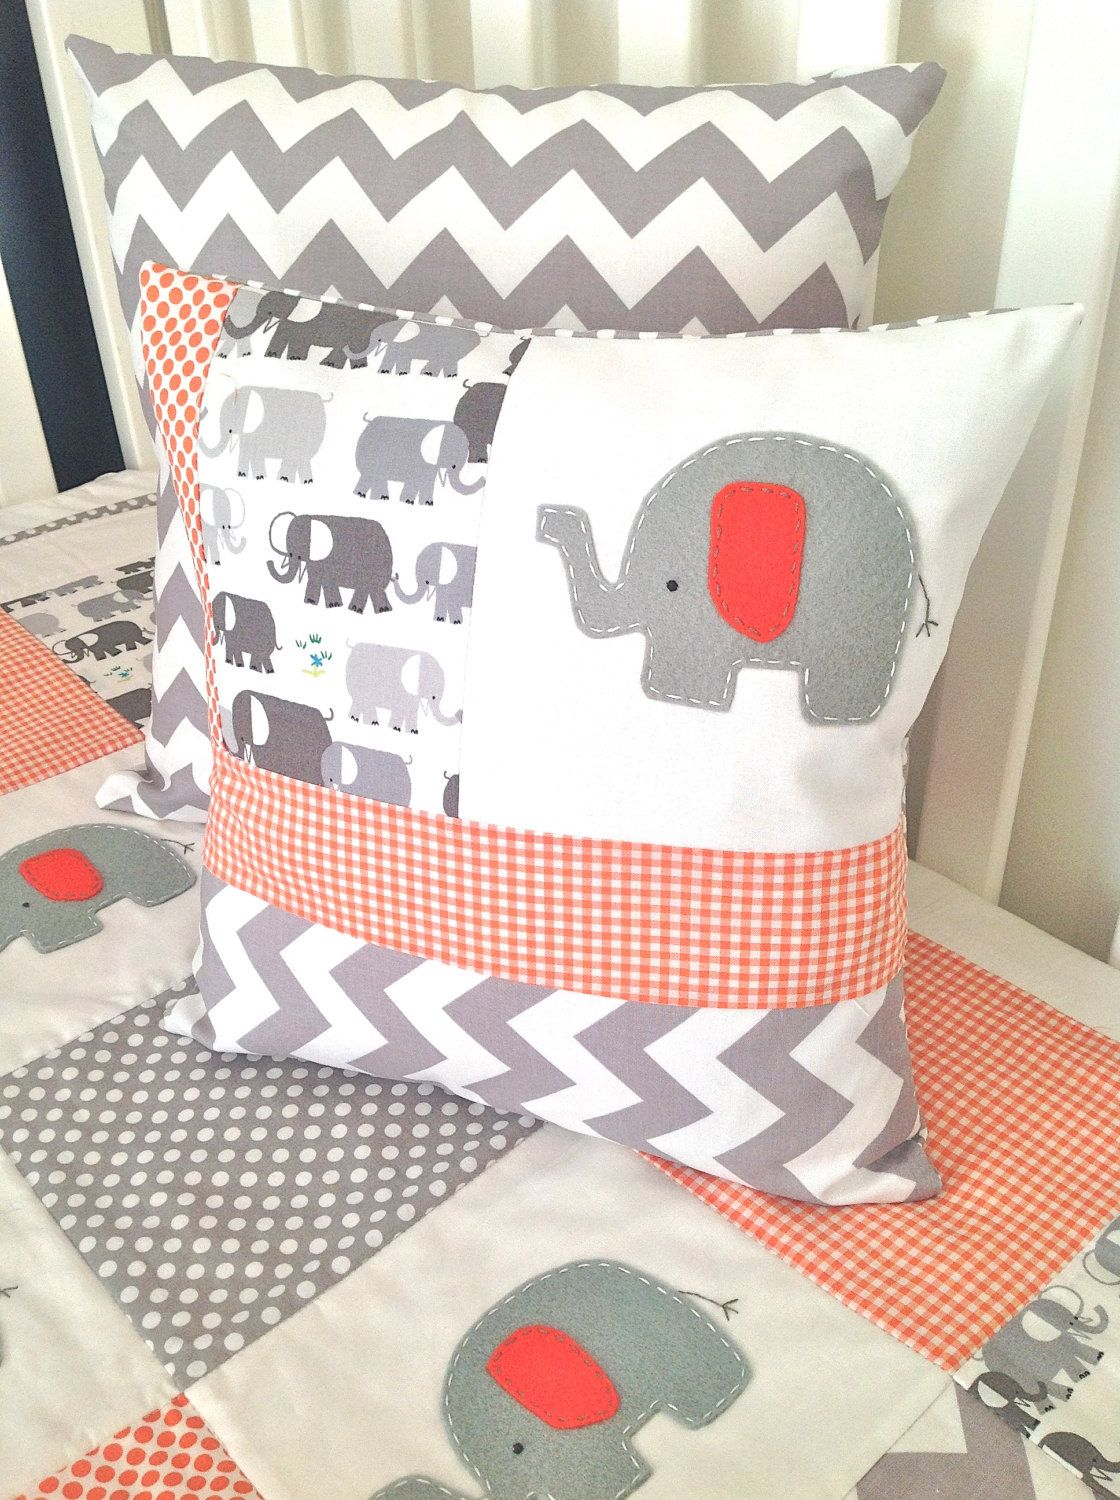 Crib pillows babies - Elephant Baby Crib Quilt And Pillow In Orange By Alphabetmonkey I Like The Combination Of Prints Chevron Check Print Large Design